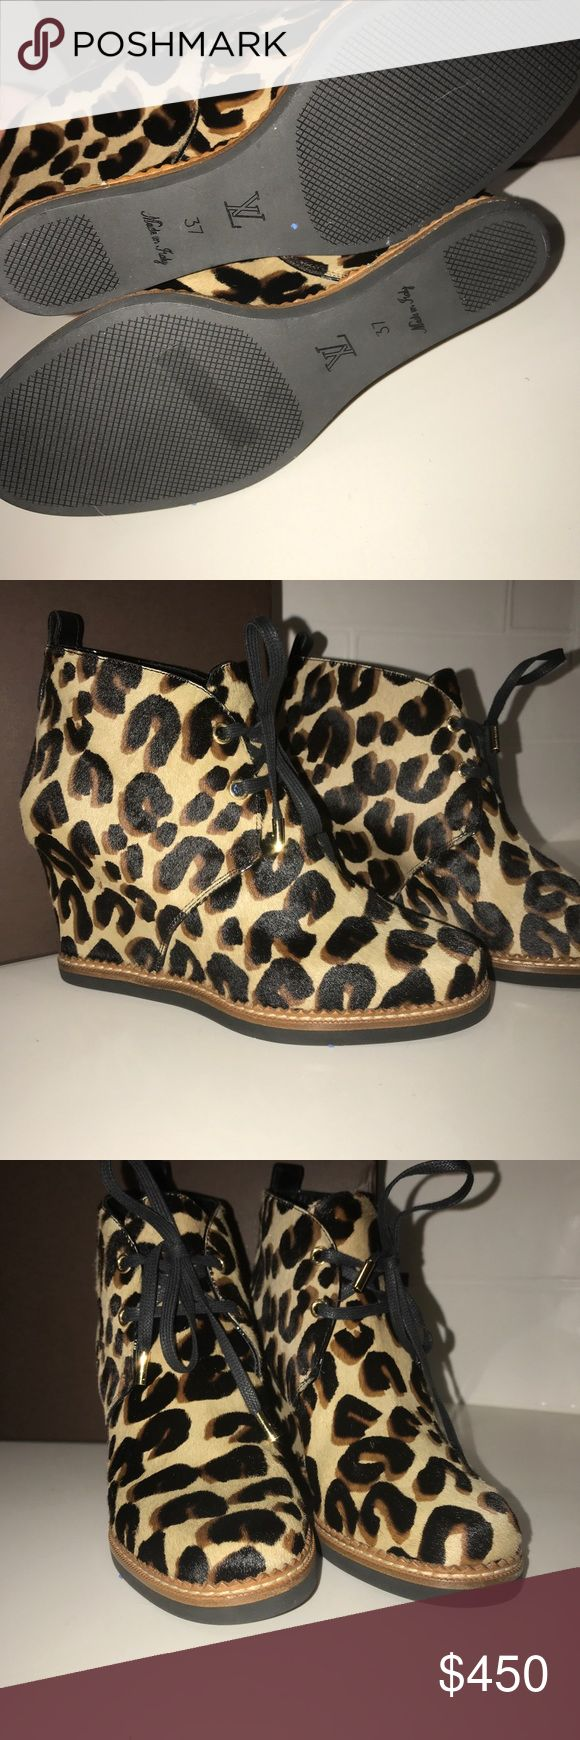 Authentic Louis Vuitton Cheetah Wedges Gorgeous Louis Vuitton Cheetah print pony hair wedges. Perfect condition with original Louis Vuitton laces. Comes with box and dust bags. Louis Vuitton Shoes Ankle Boots & Booties